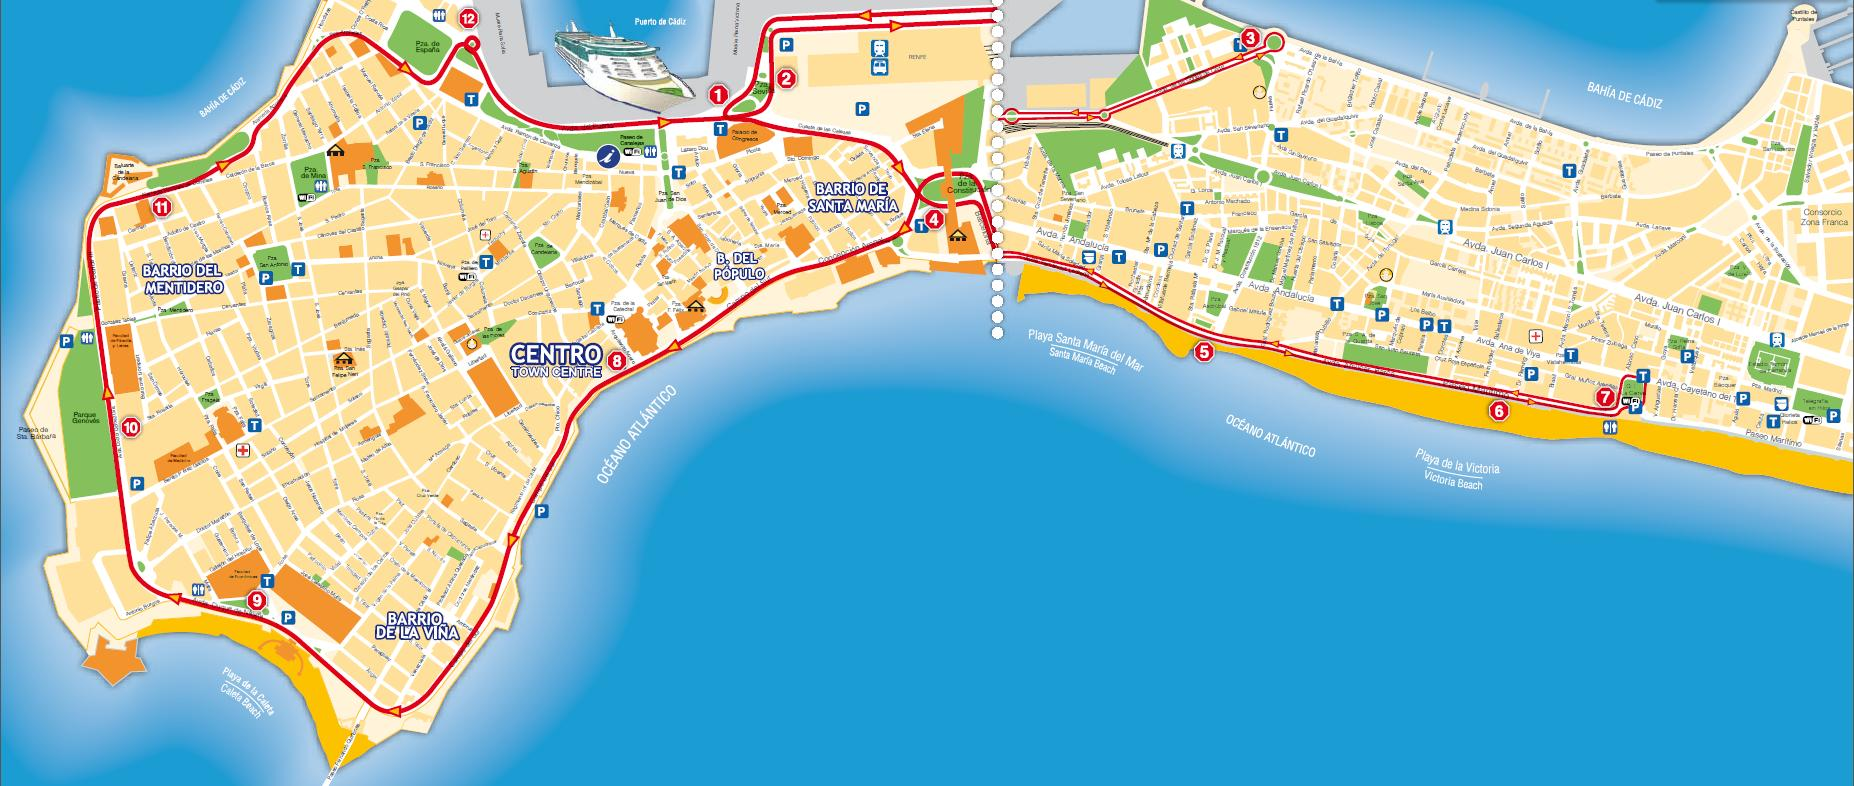 Cadiz City Sightseeing Hop-On Hop-Off Bus Tour - Lonely Planet